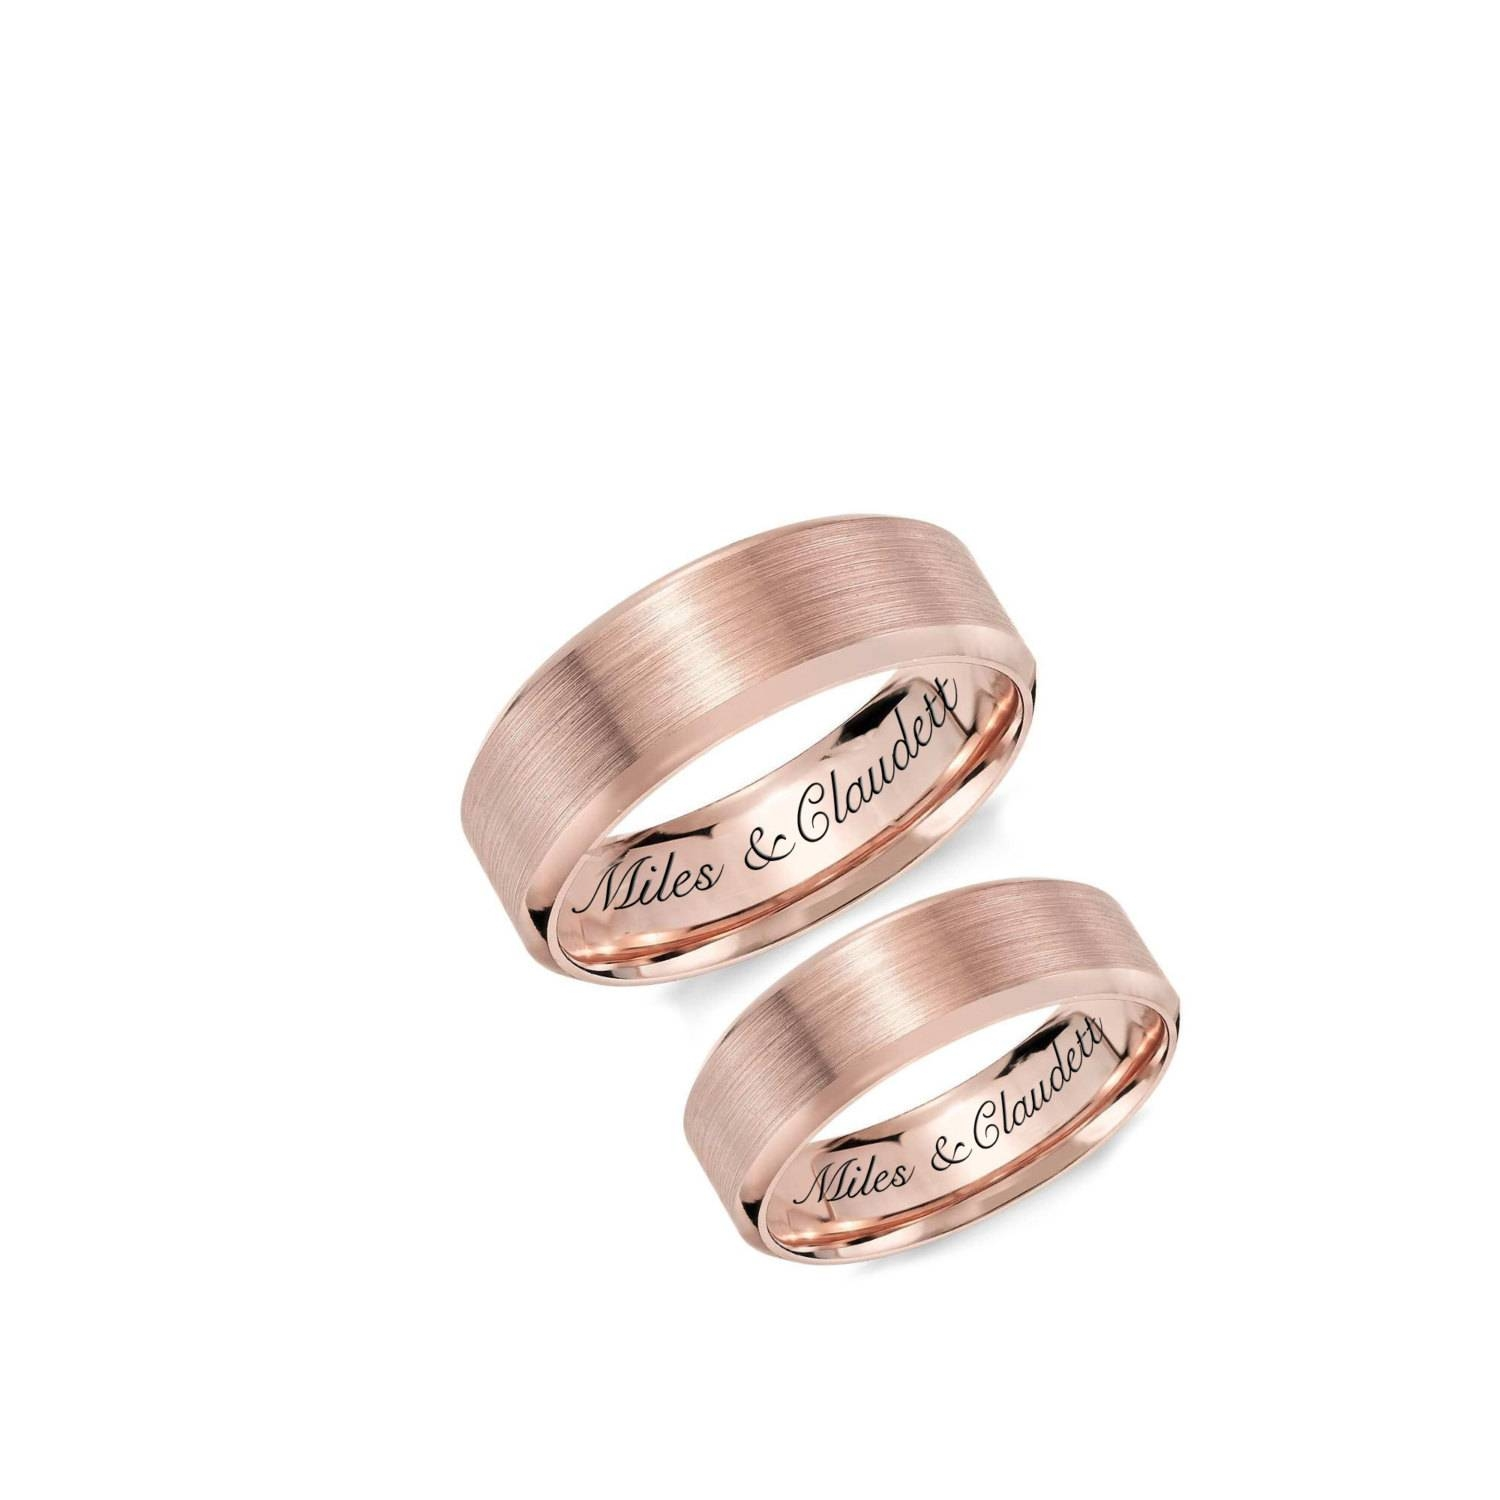 Personalized Rings Engraved Rings Rose Gold Ring Set Regarding 2018 Anniversary Rings For Couples (View 12 of 25)